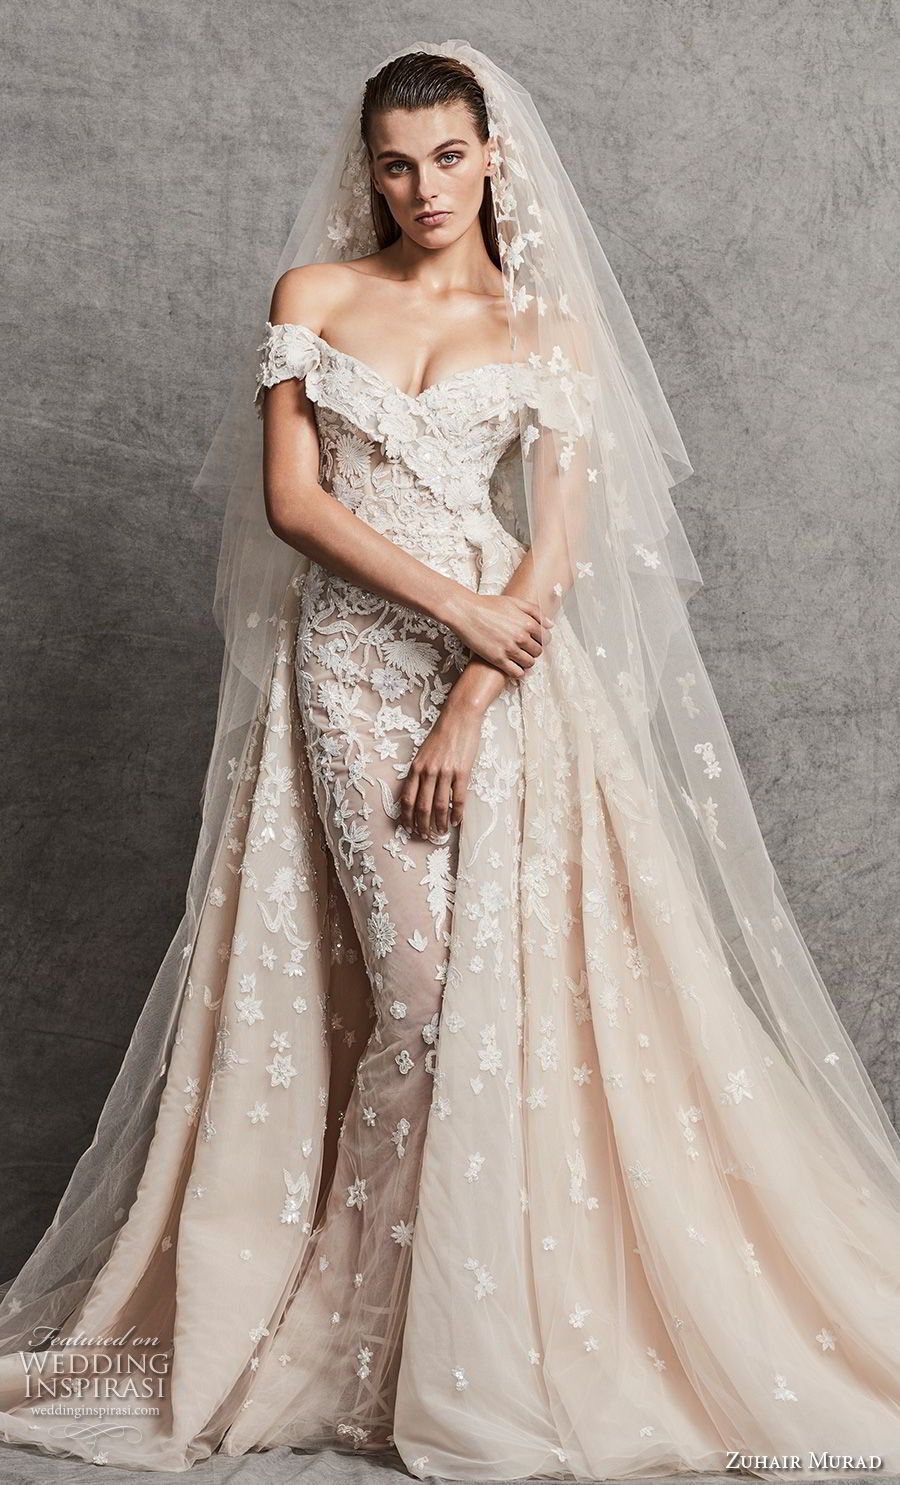 Zuhair murad fall 2018 wedding dresses pinterest chapel train zuhair murad fall 2018 bridal off the shoulder v neck full embellishment elegant fit and flare junglespirit Images